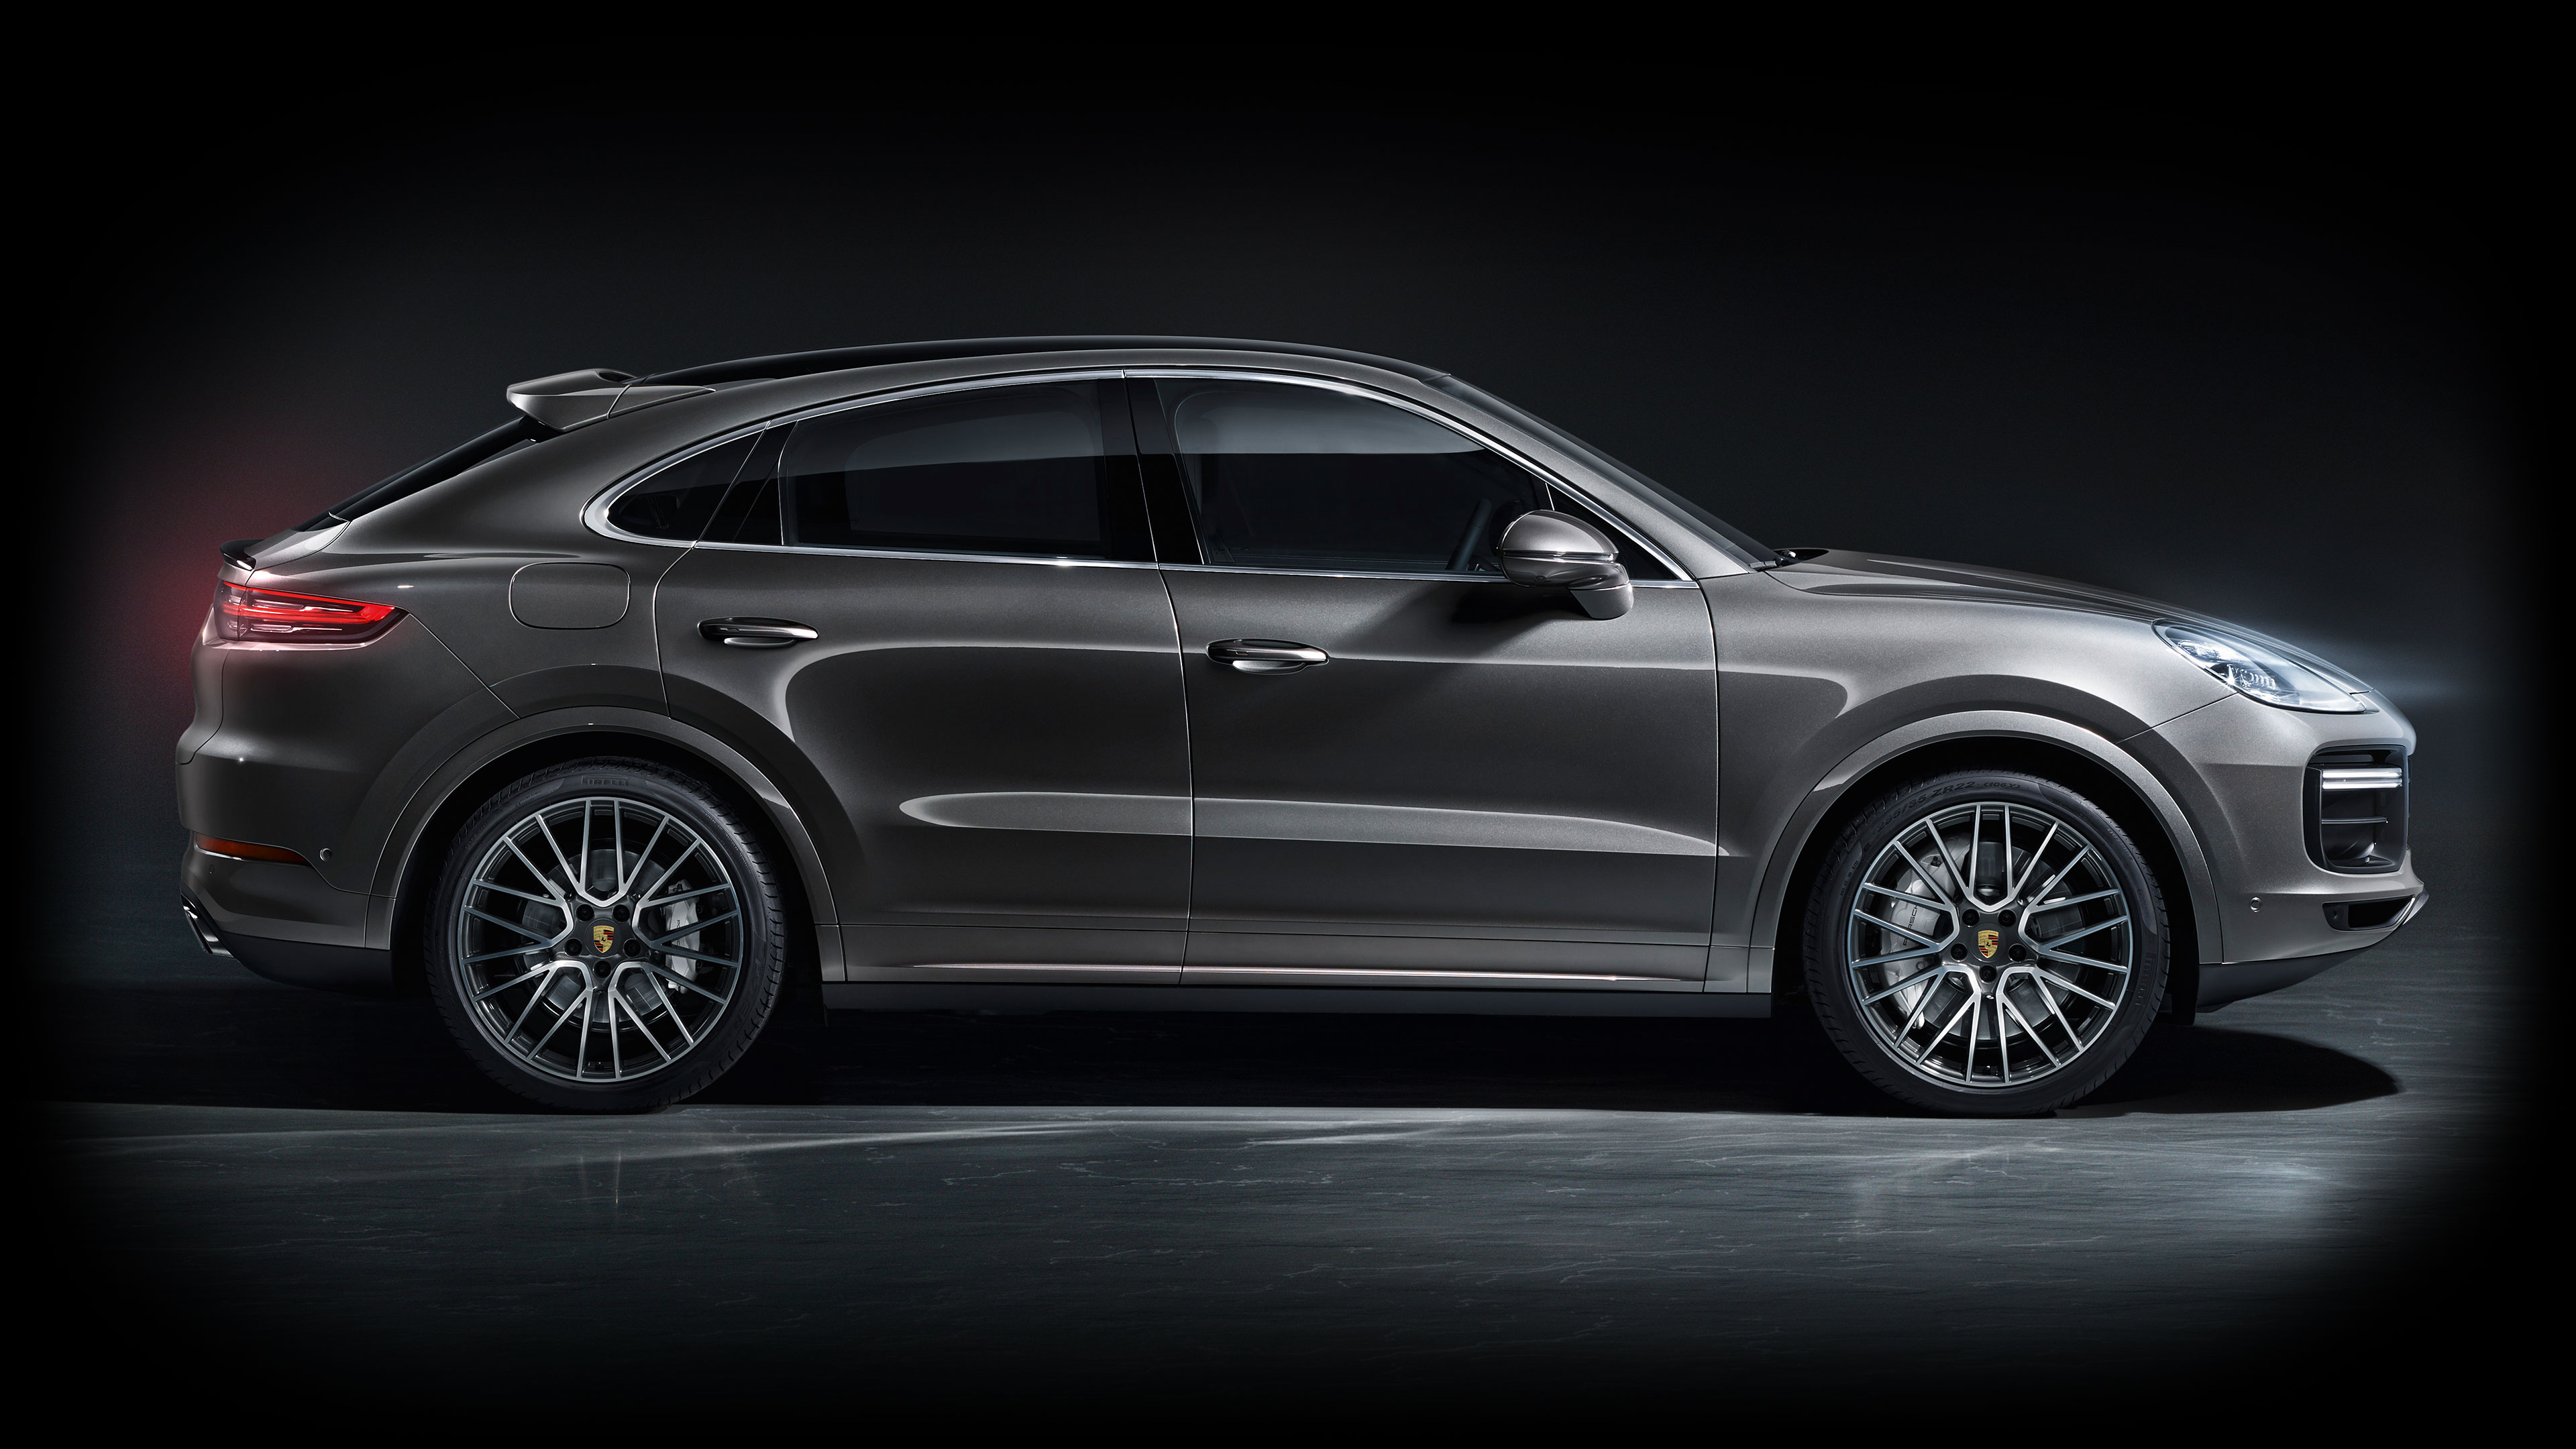 Porsche Cayenne Turbo Coupé - Technical Specs